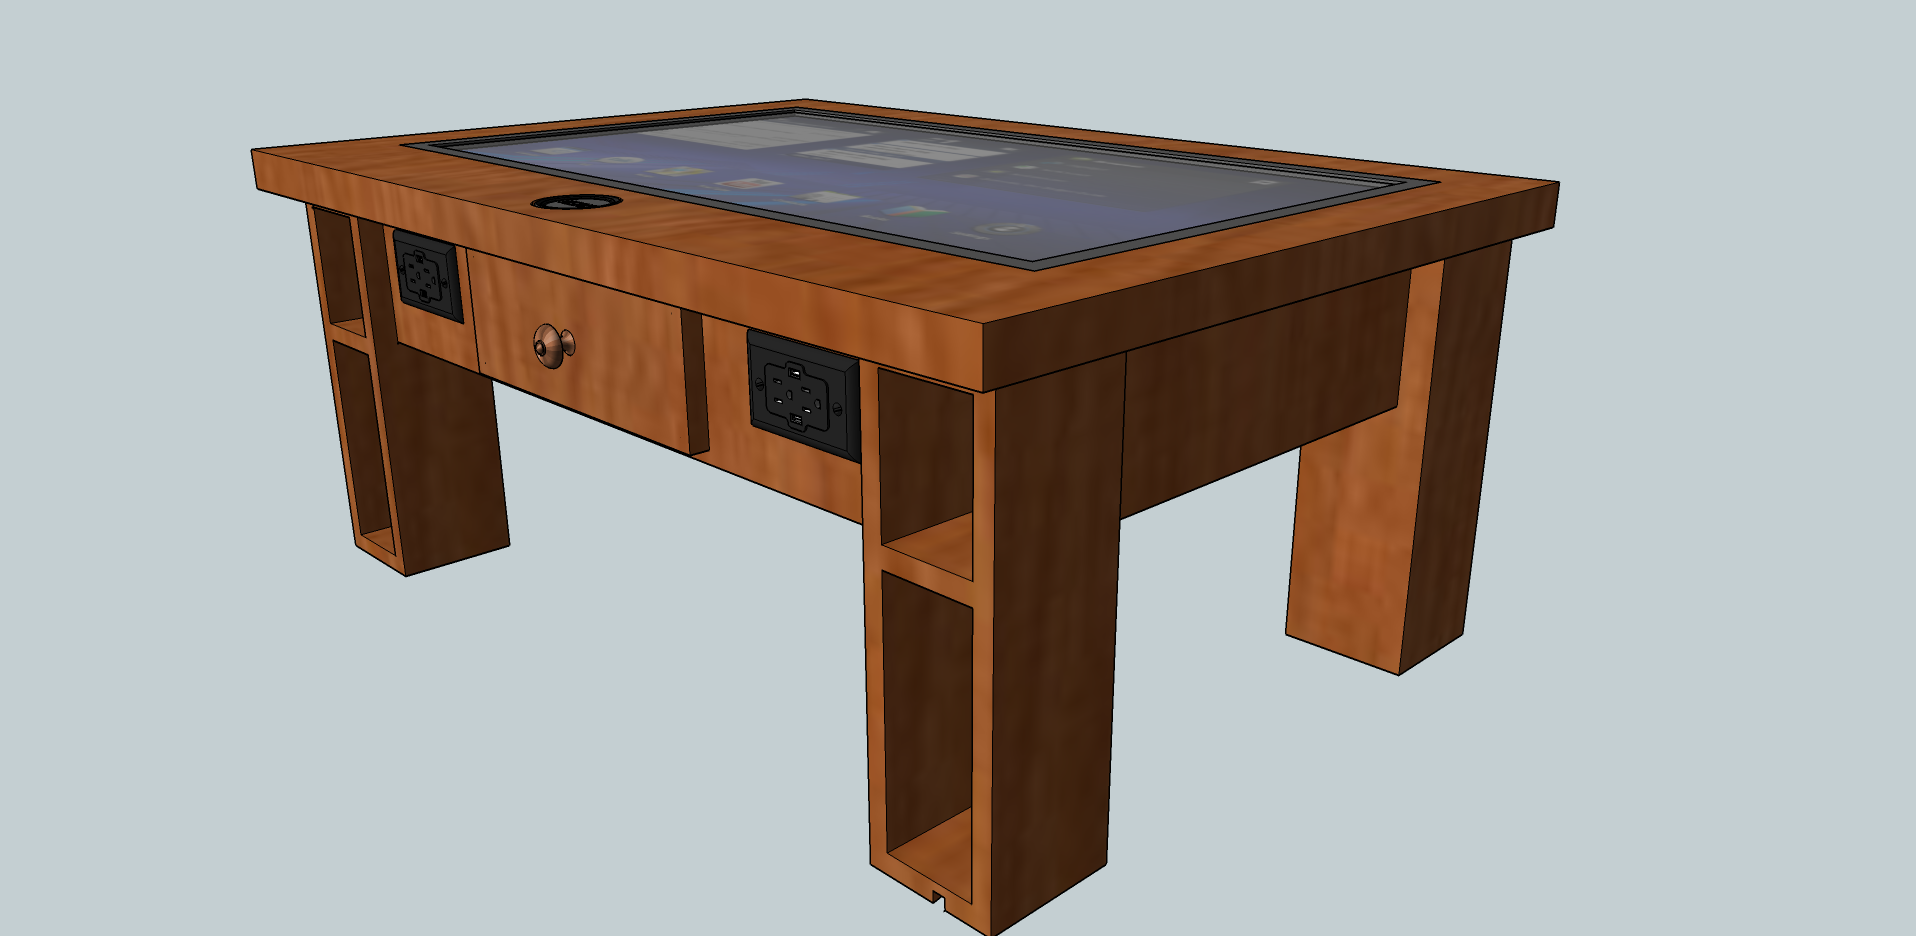 Coffee table design.png